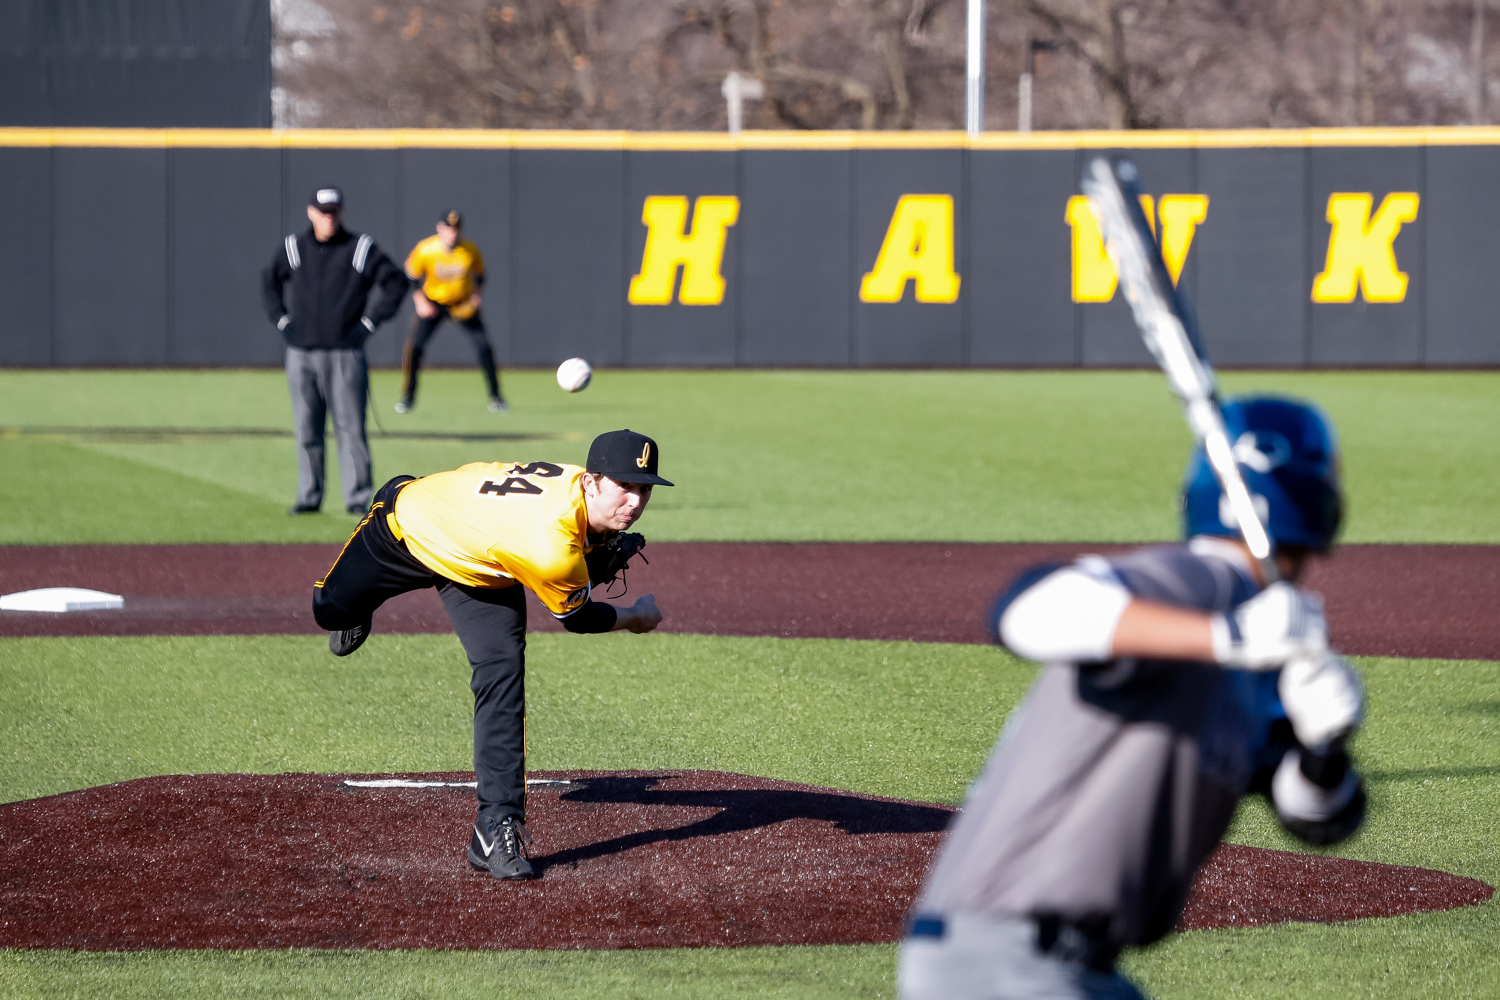 Iowa's Duncan Davitt pitches the ball during a baseball game against Clarke University on Tuesday, Apr. 2, 2019. The Hawkeyes defeated the Pride 3-2.